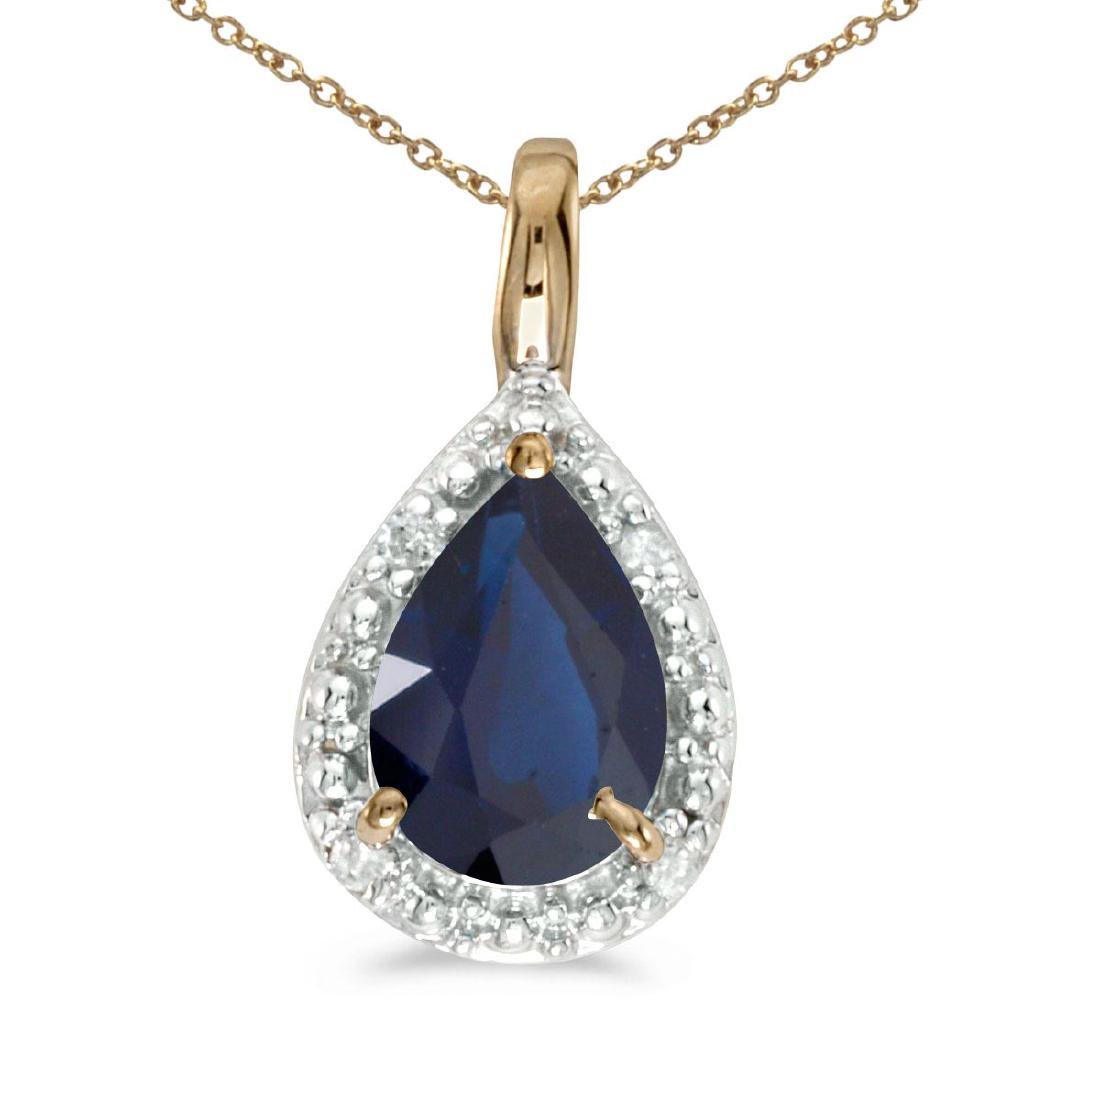 Certified 10k Yellow Gold Pear Sapphire Pendant 0.65 CT